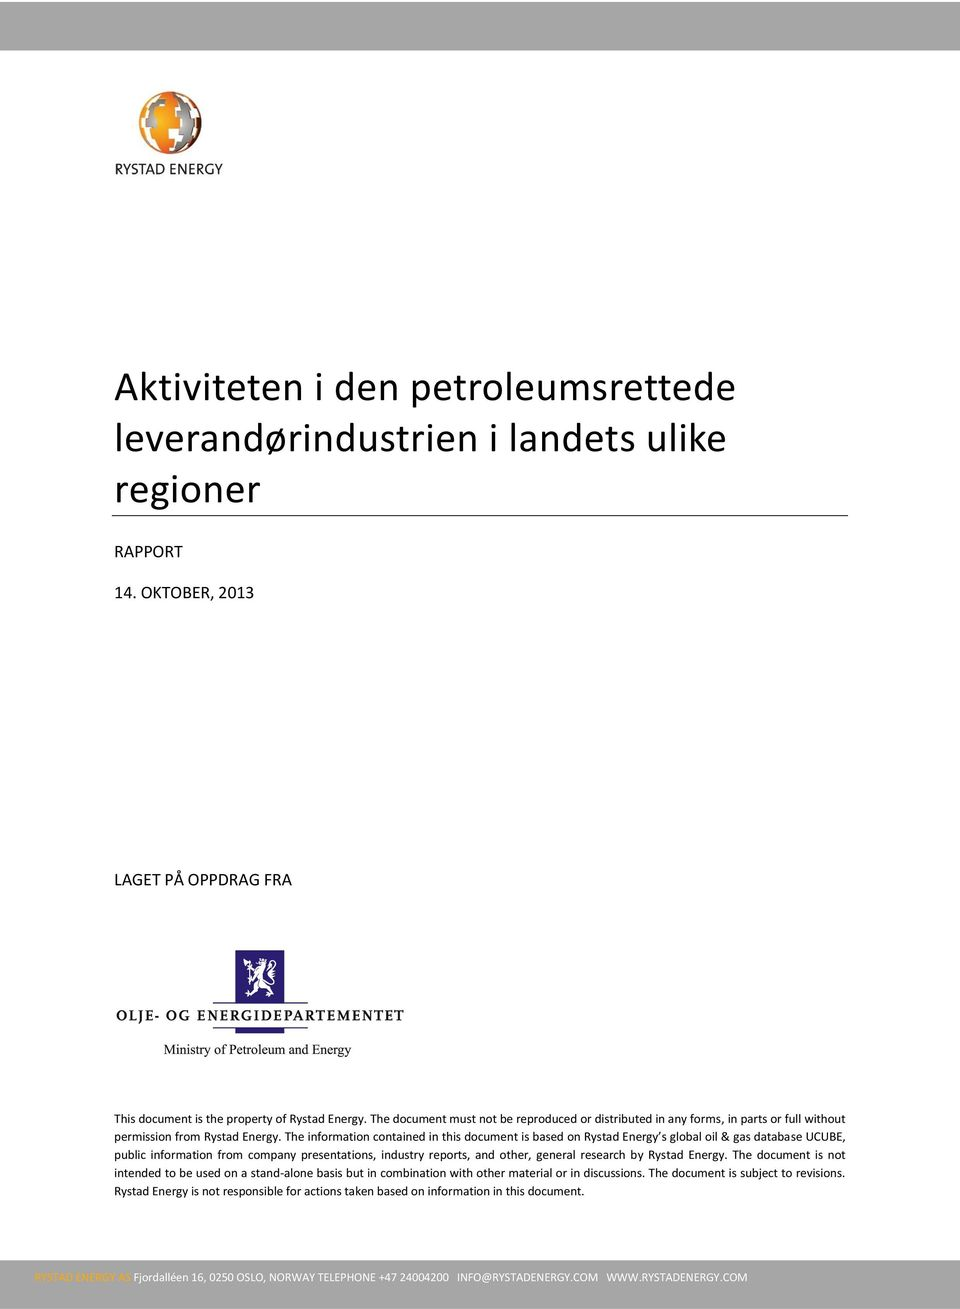 The information contained in this document is based on Rystad Energy s global oil & gas database UCUBE, public information from company presentations, industry reports, and other, general research by